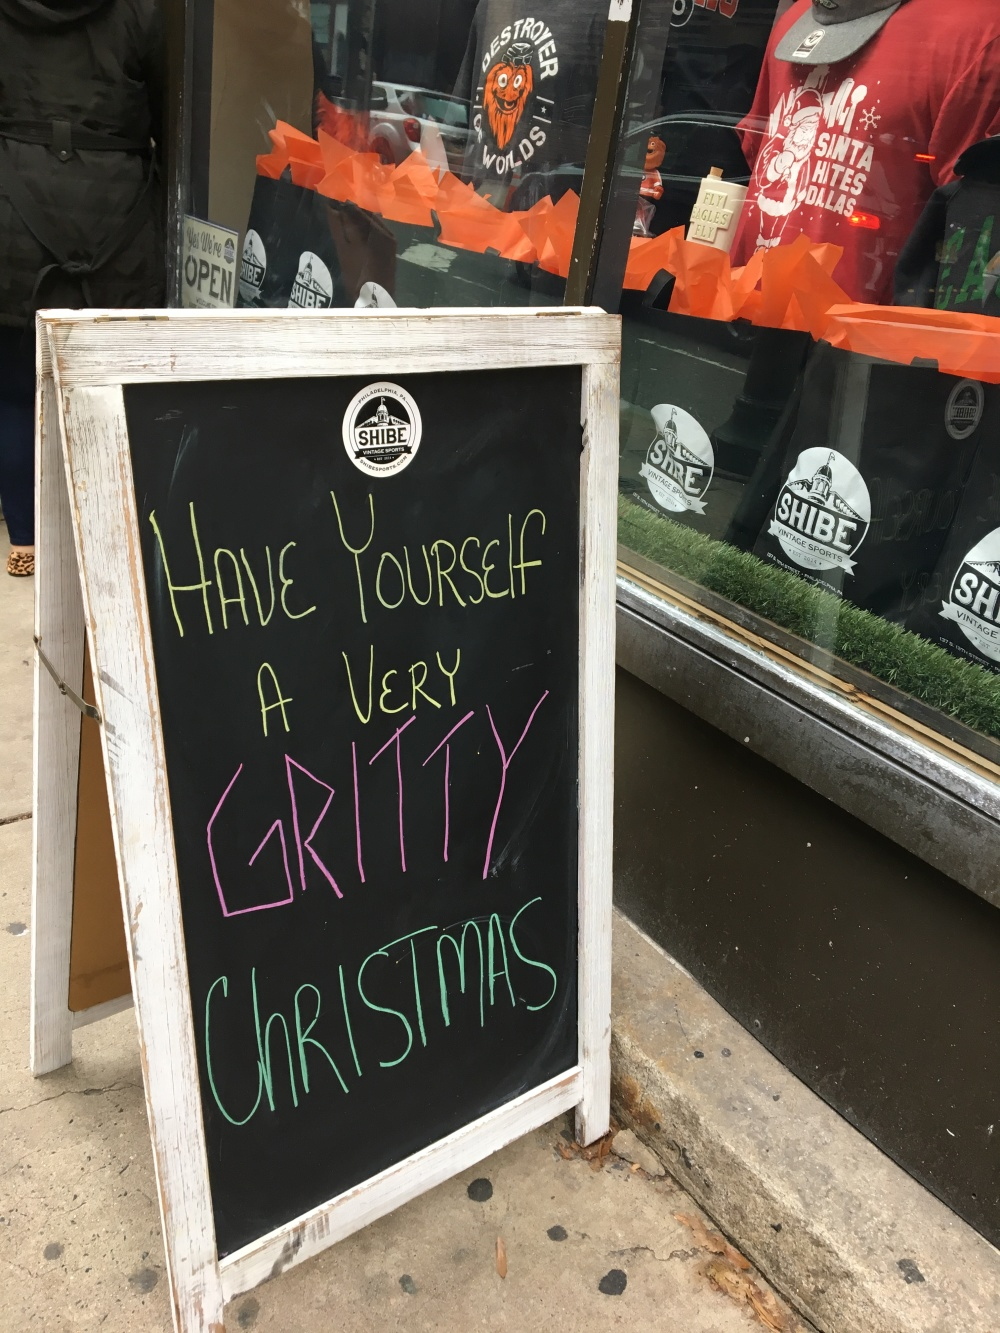 Have yourself a very Gritty Christmas